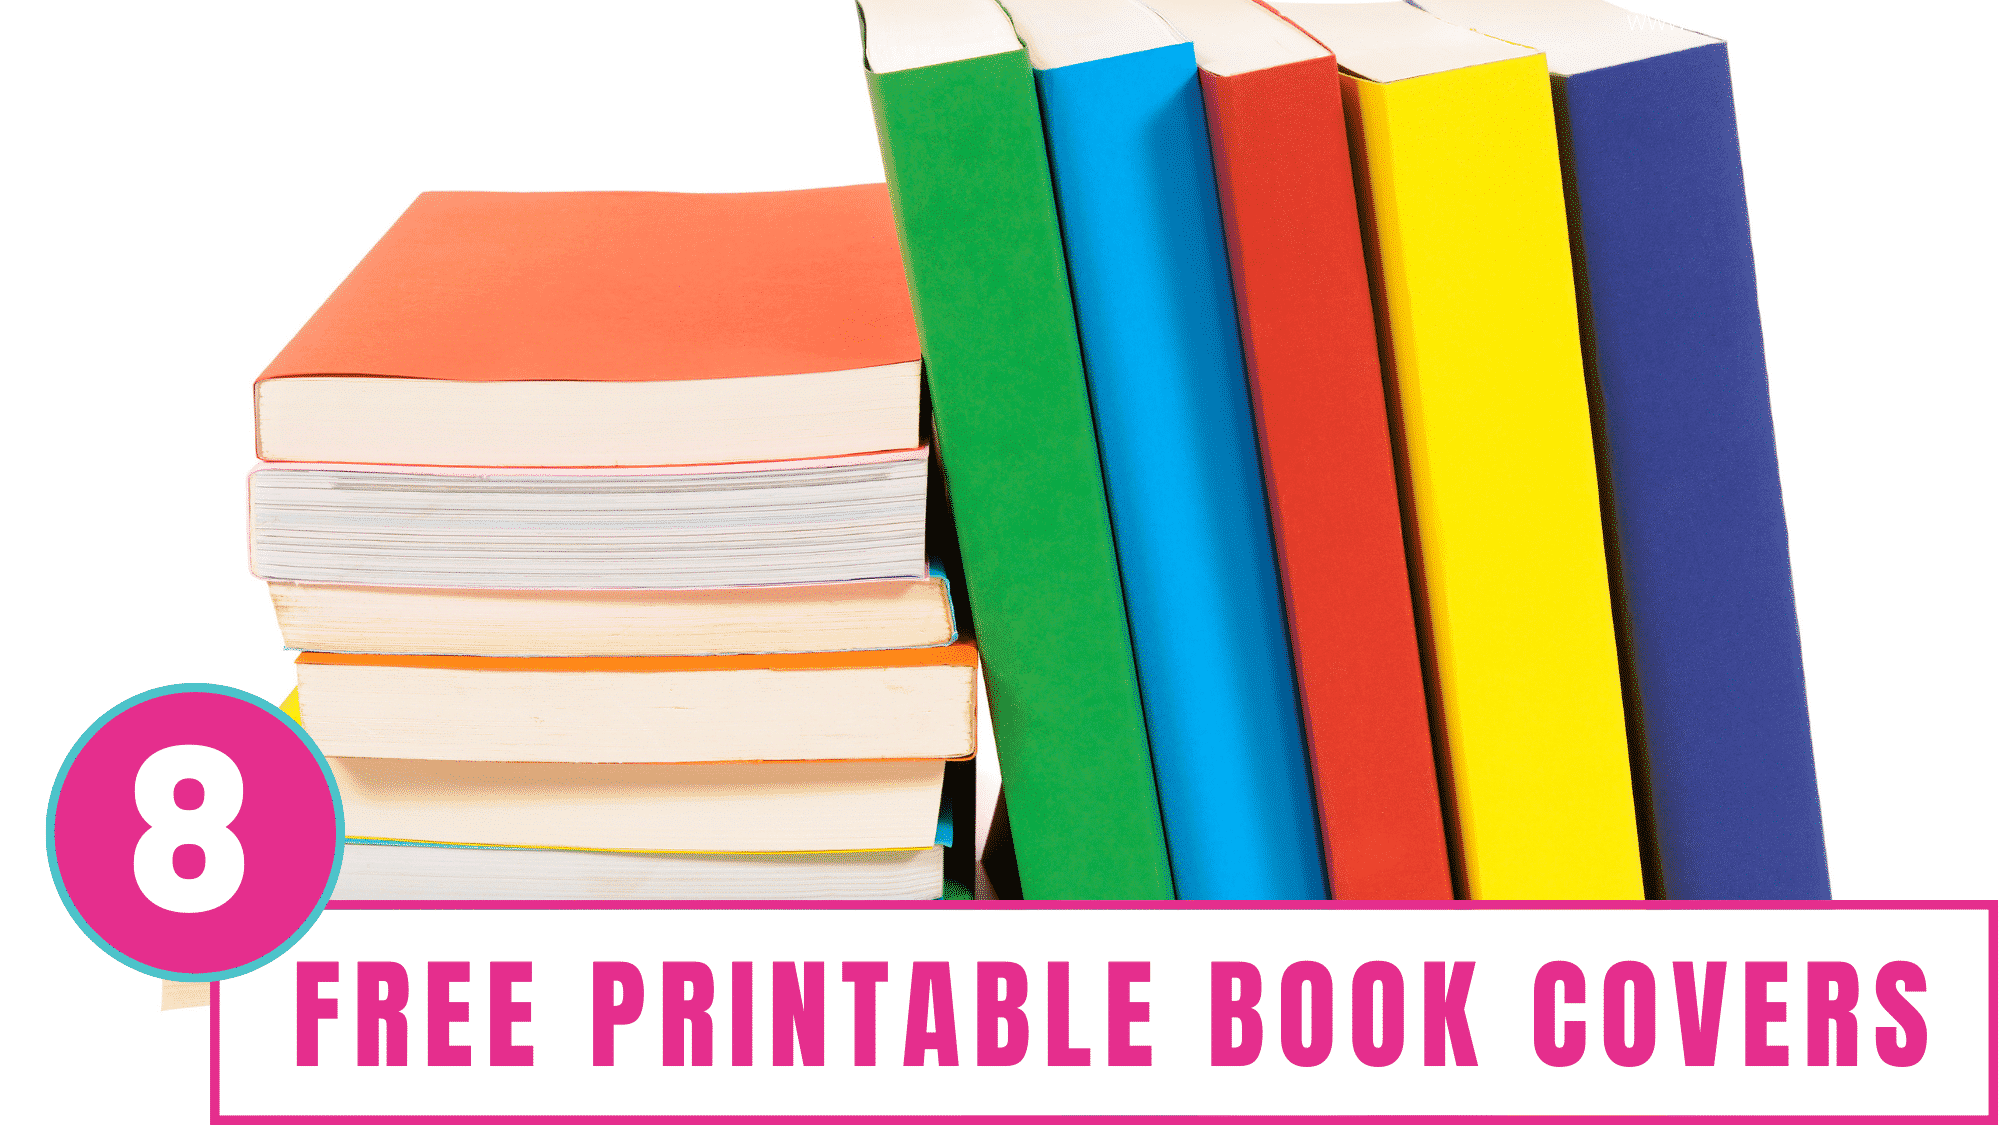 These free printable book covers will help your kid personalize their school books which may motivate them to use them more....maybe.